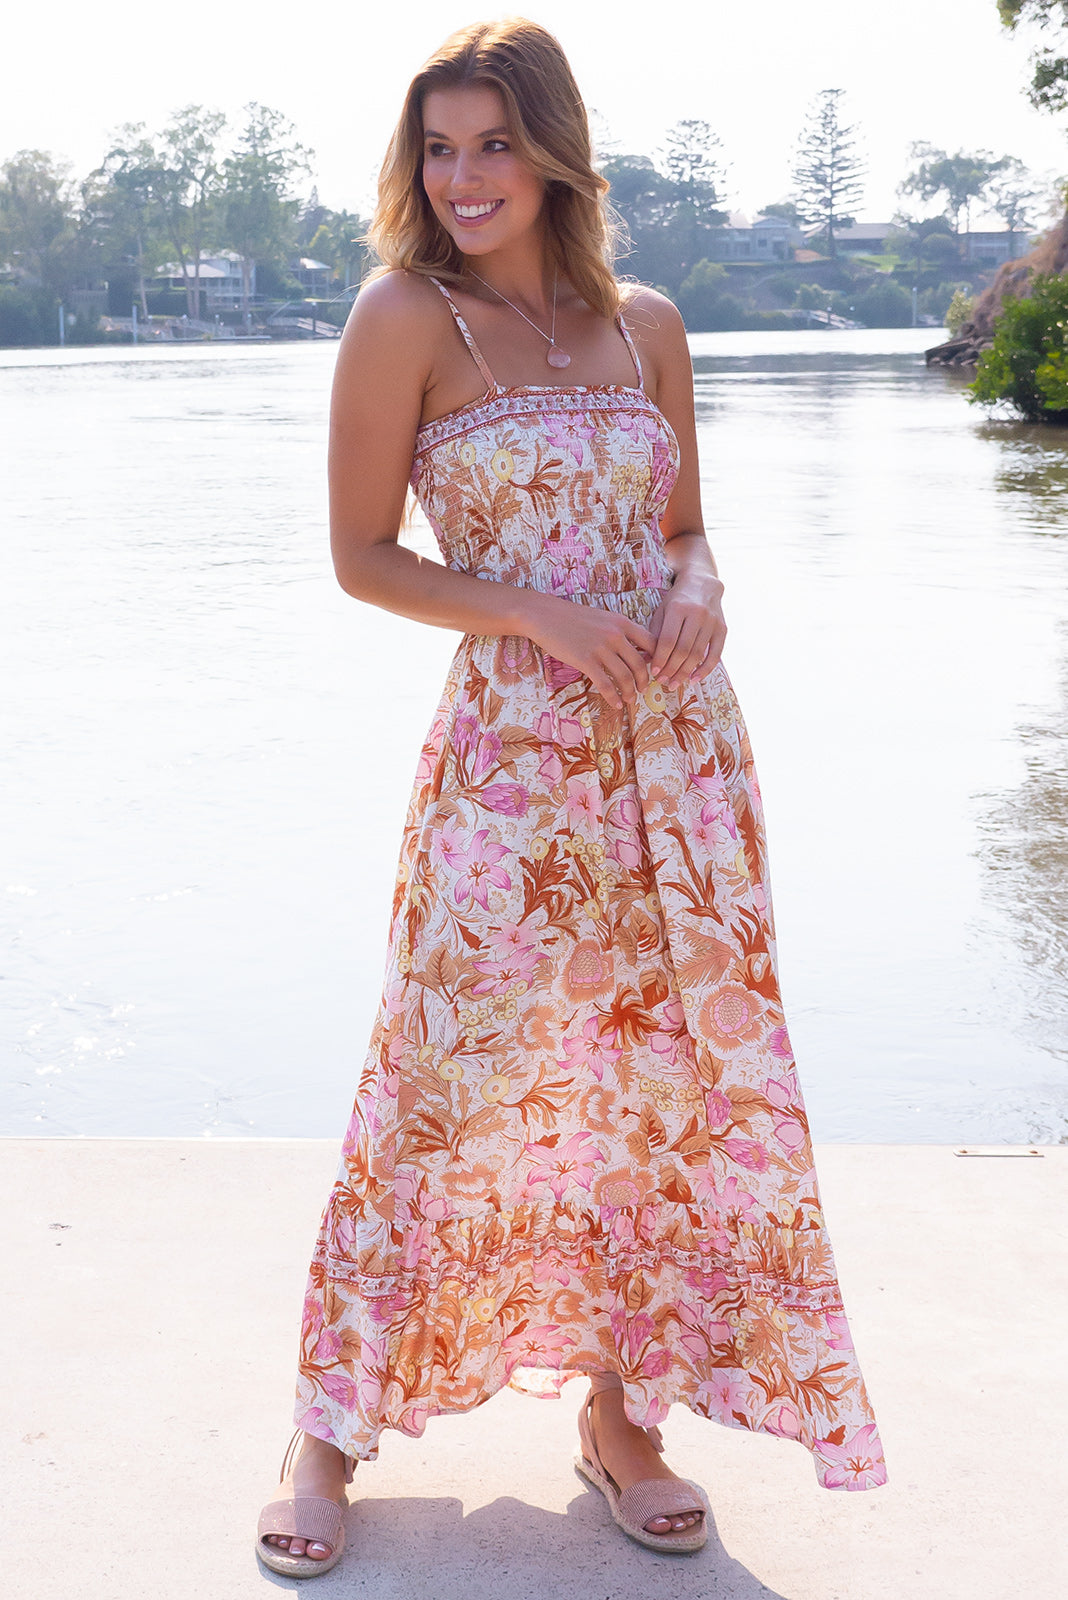 Poetry Chateau Pink Maxi Dress, bohemian summer style, side pockets, elasticated shirred bodice, off-white base with medium floral print featuring warm copper and pink.